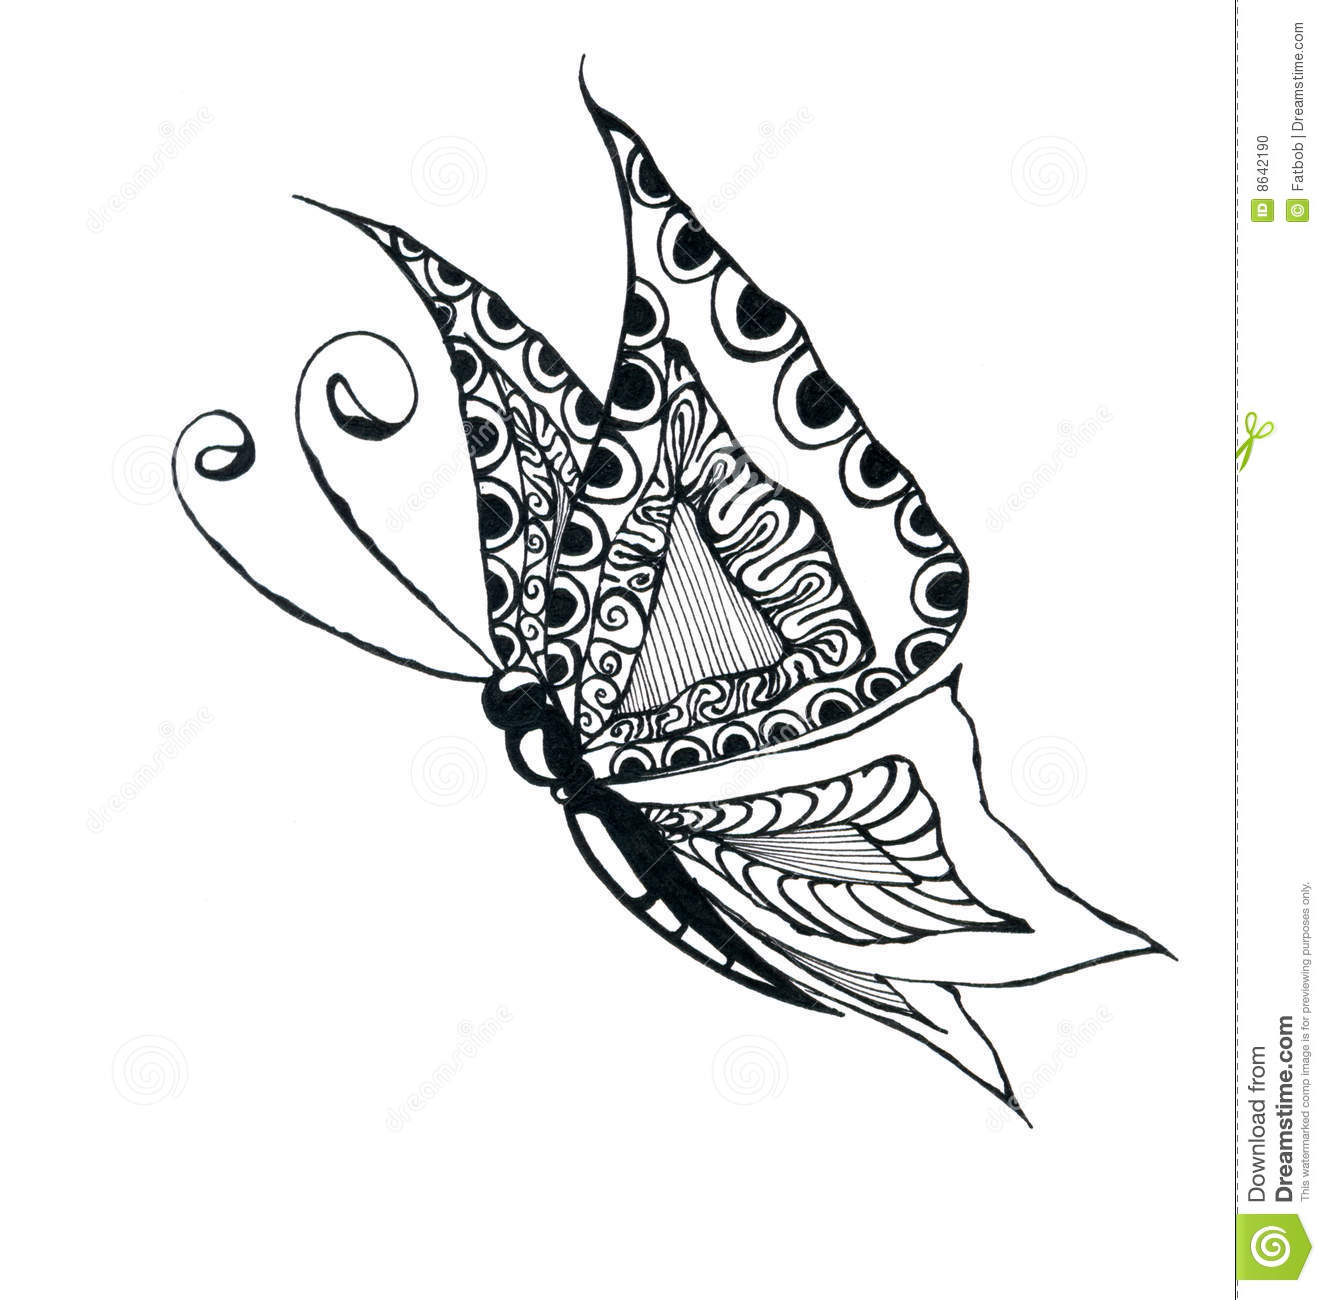 Imagenes De Plantas Contra Zombis Para Dibujar TaKbGron8 together with Pencil Drawing Illustration Fine Art moreover Mermaid Sketch 309960605 further Easy Flying Dragon Drawings together with Stock Illustration Art Skull Fairy Tattoo Design Love Hand Pencil Drawing Paper Image62328478. on scary abstract sketches